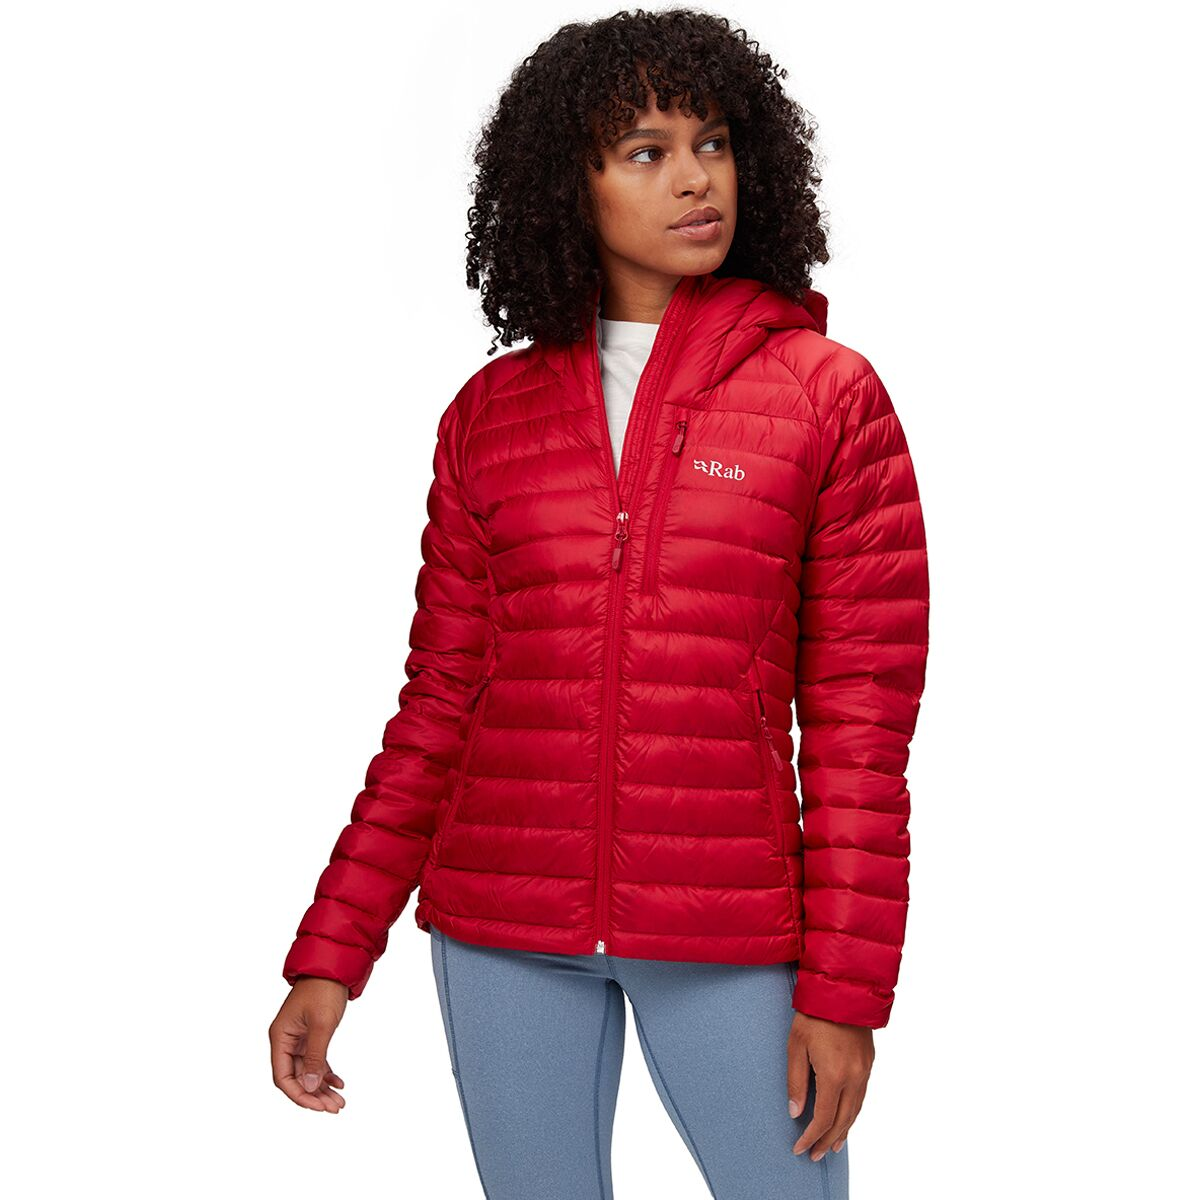 UK10 RAB Womens Microlight Alpine Jacket Steel//PASSATA